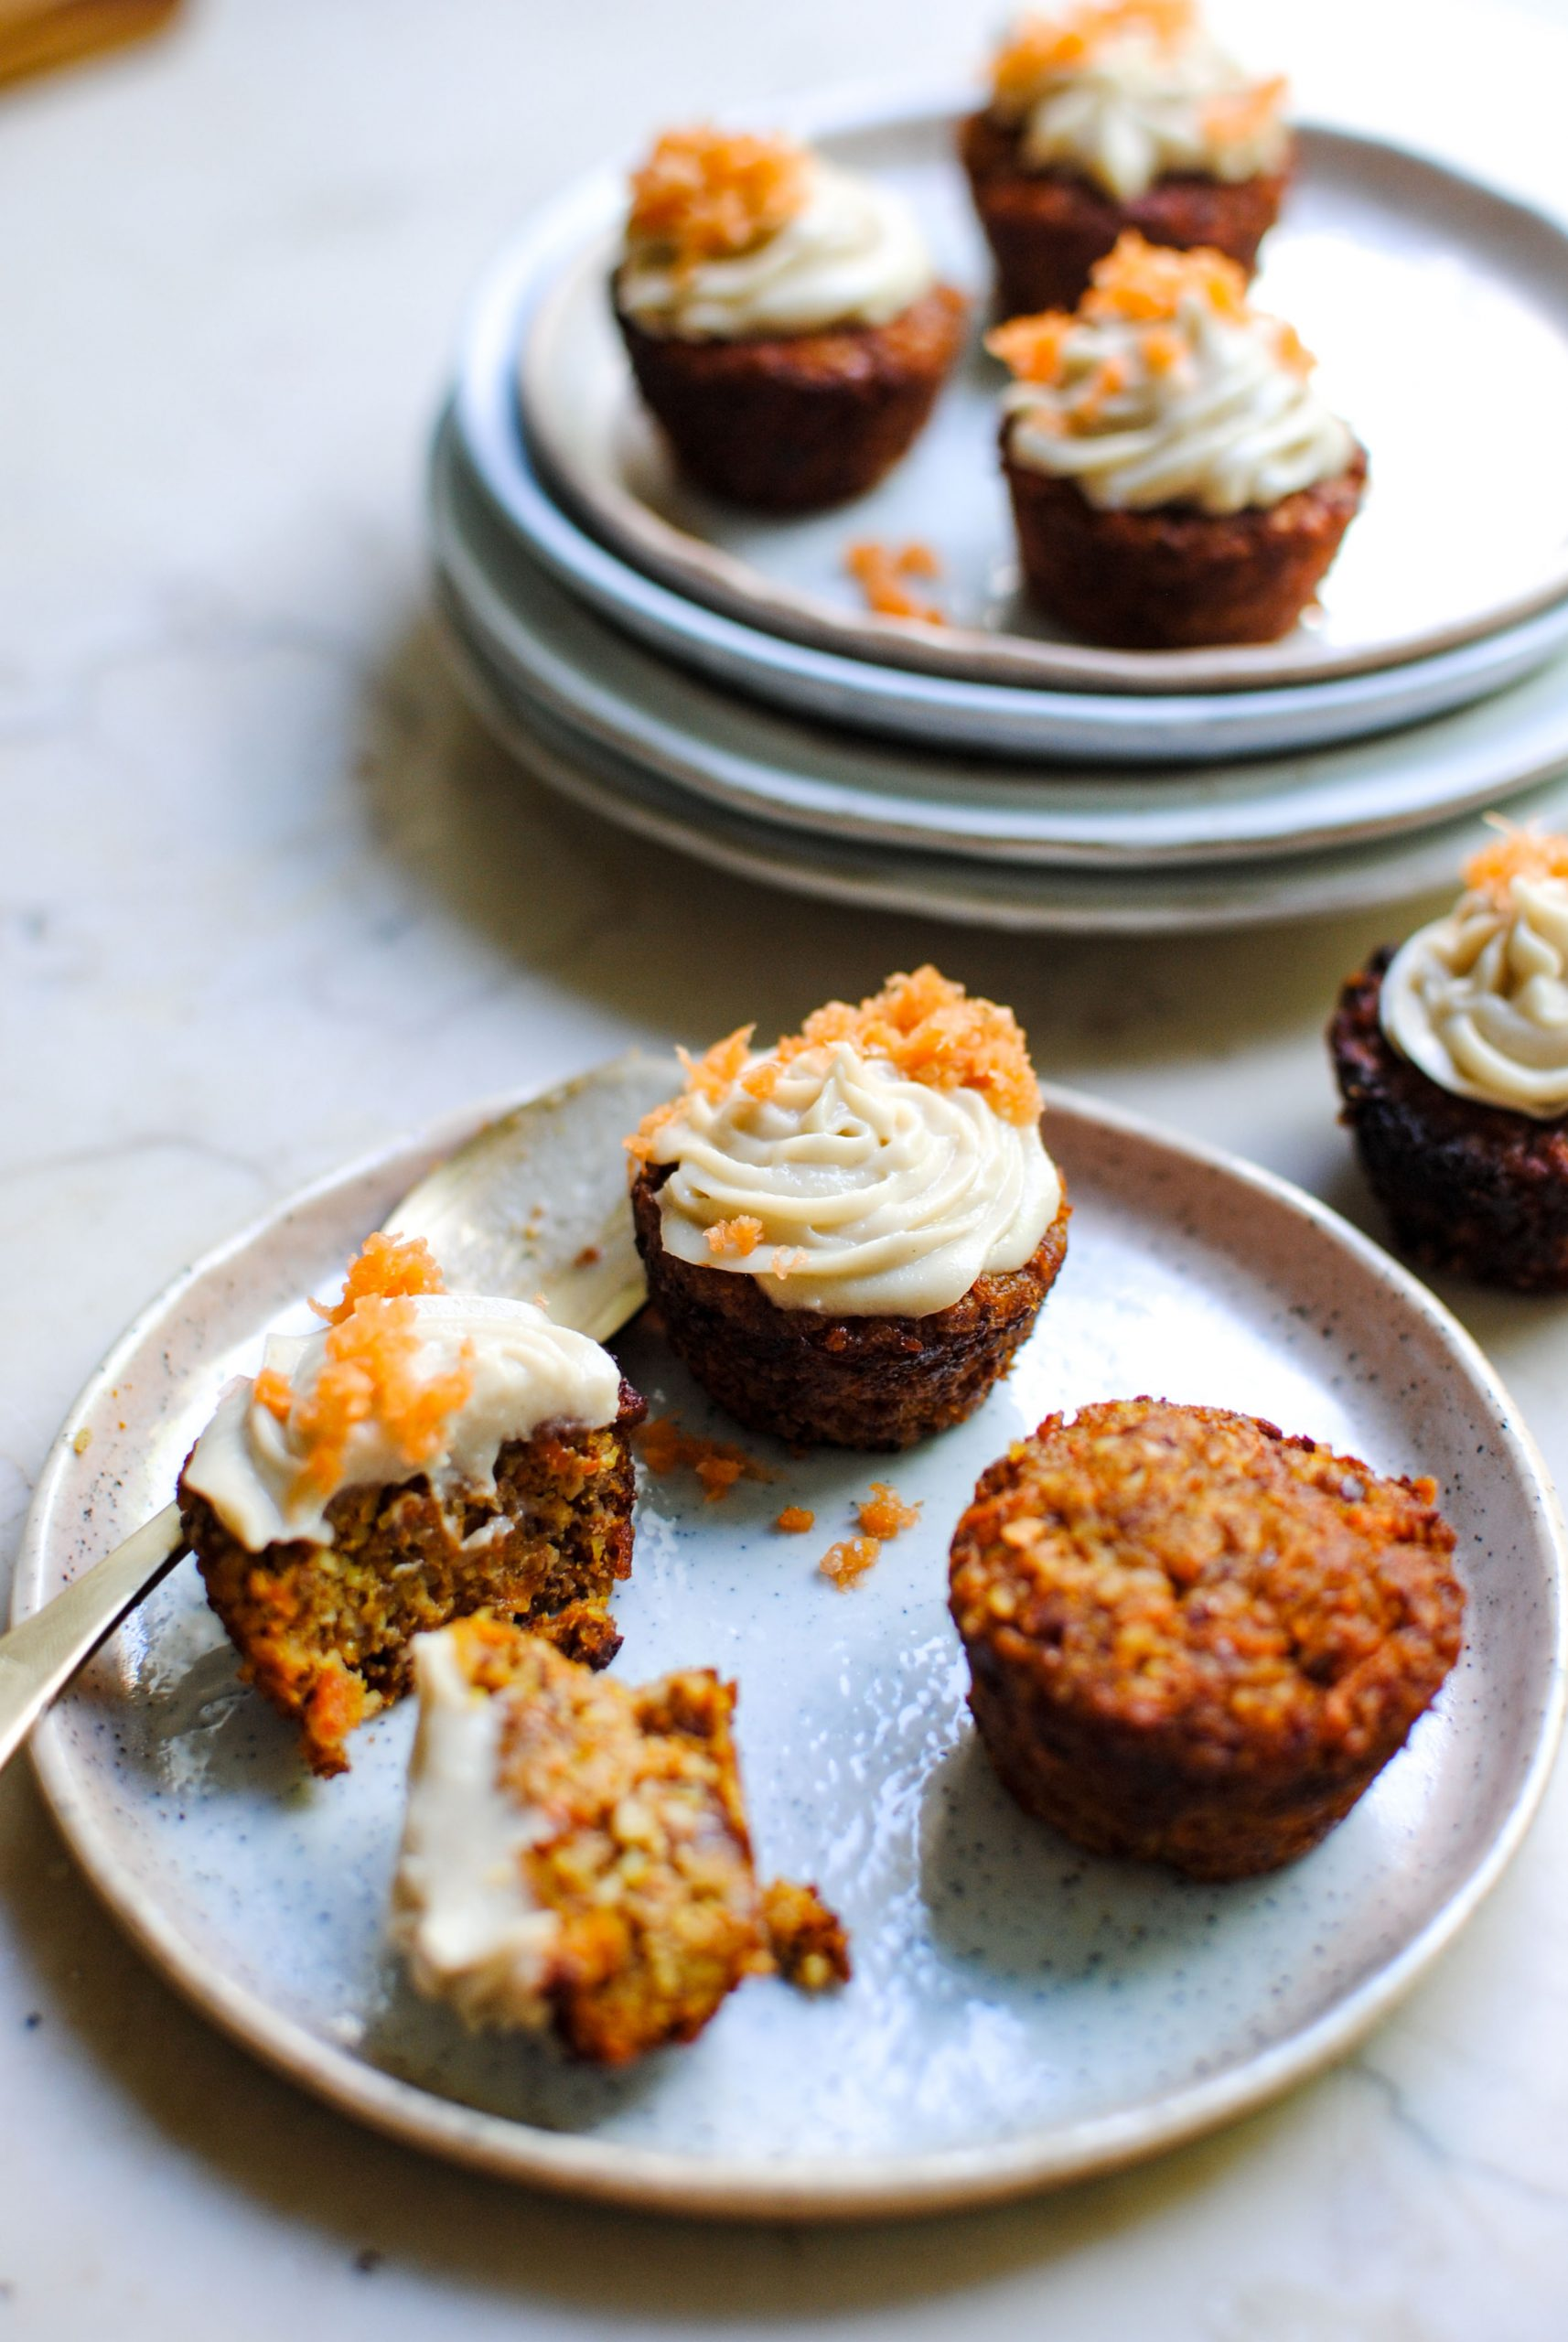 vegan carrot muffins with lemon frosting | please consider | joana limao